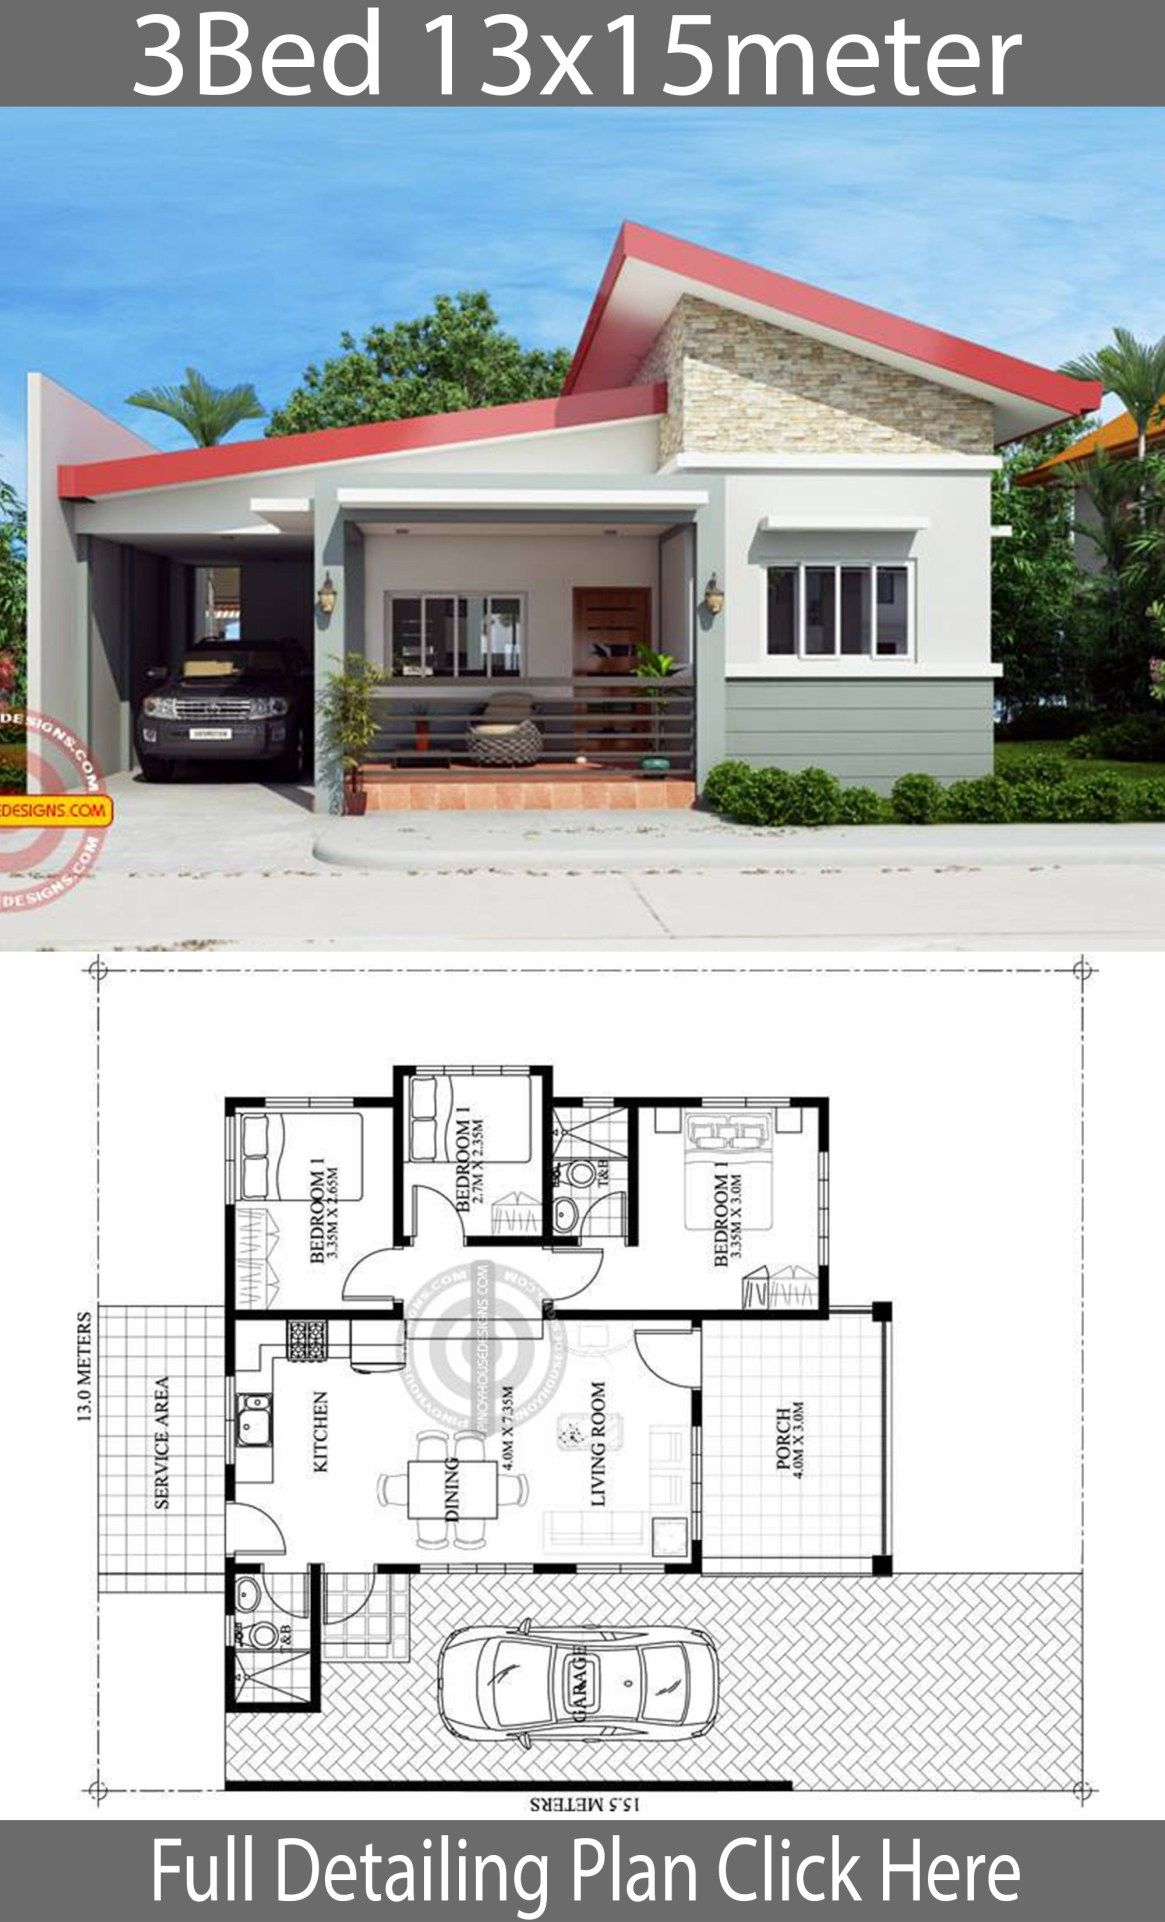 Home Design Plan 13x15m With 3 Bedrooms Home Design With Plansearch House Construction Plan Home Design Floor Plans Model House Plan